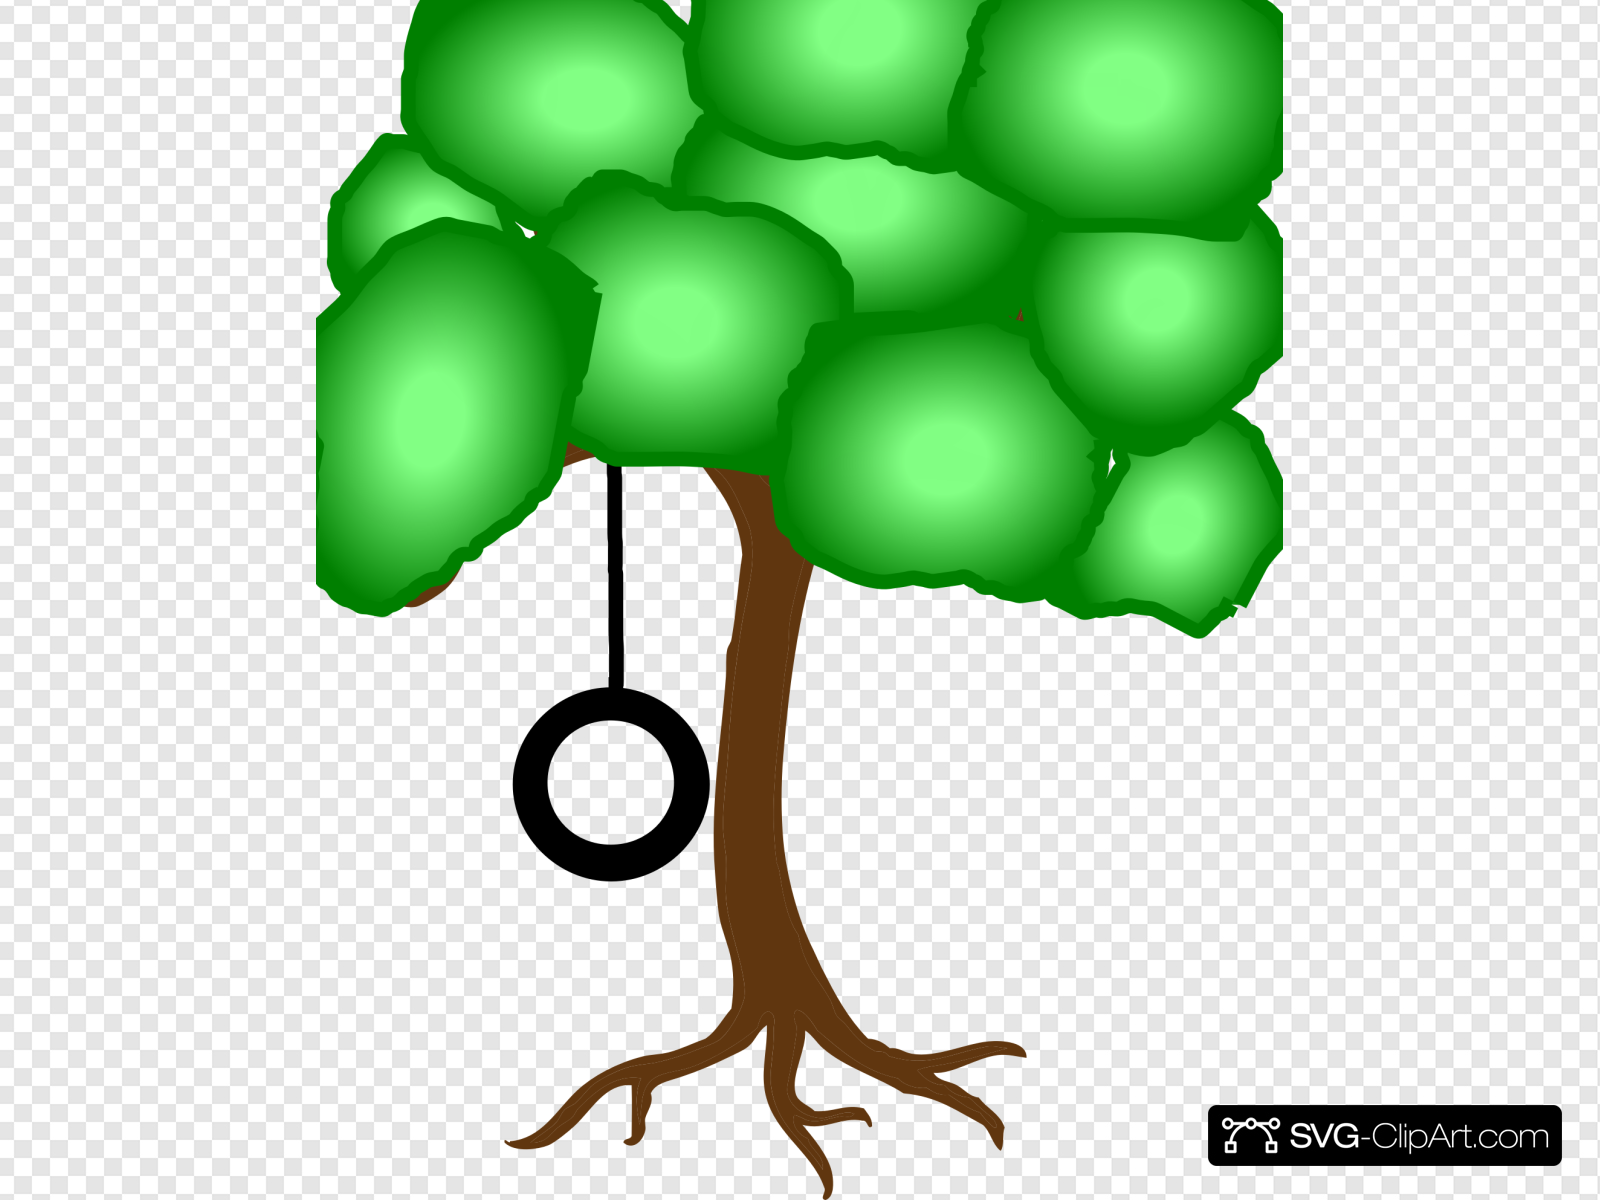 Tire Swing Clip art, Icon and SVG.